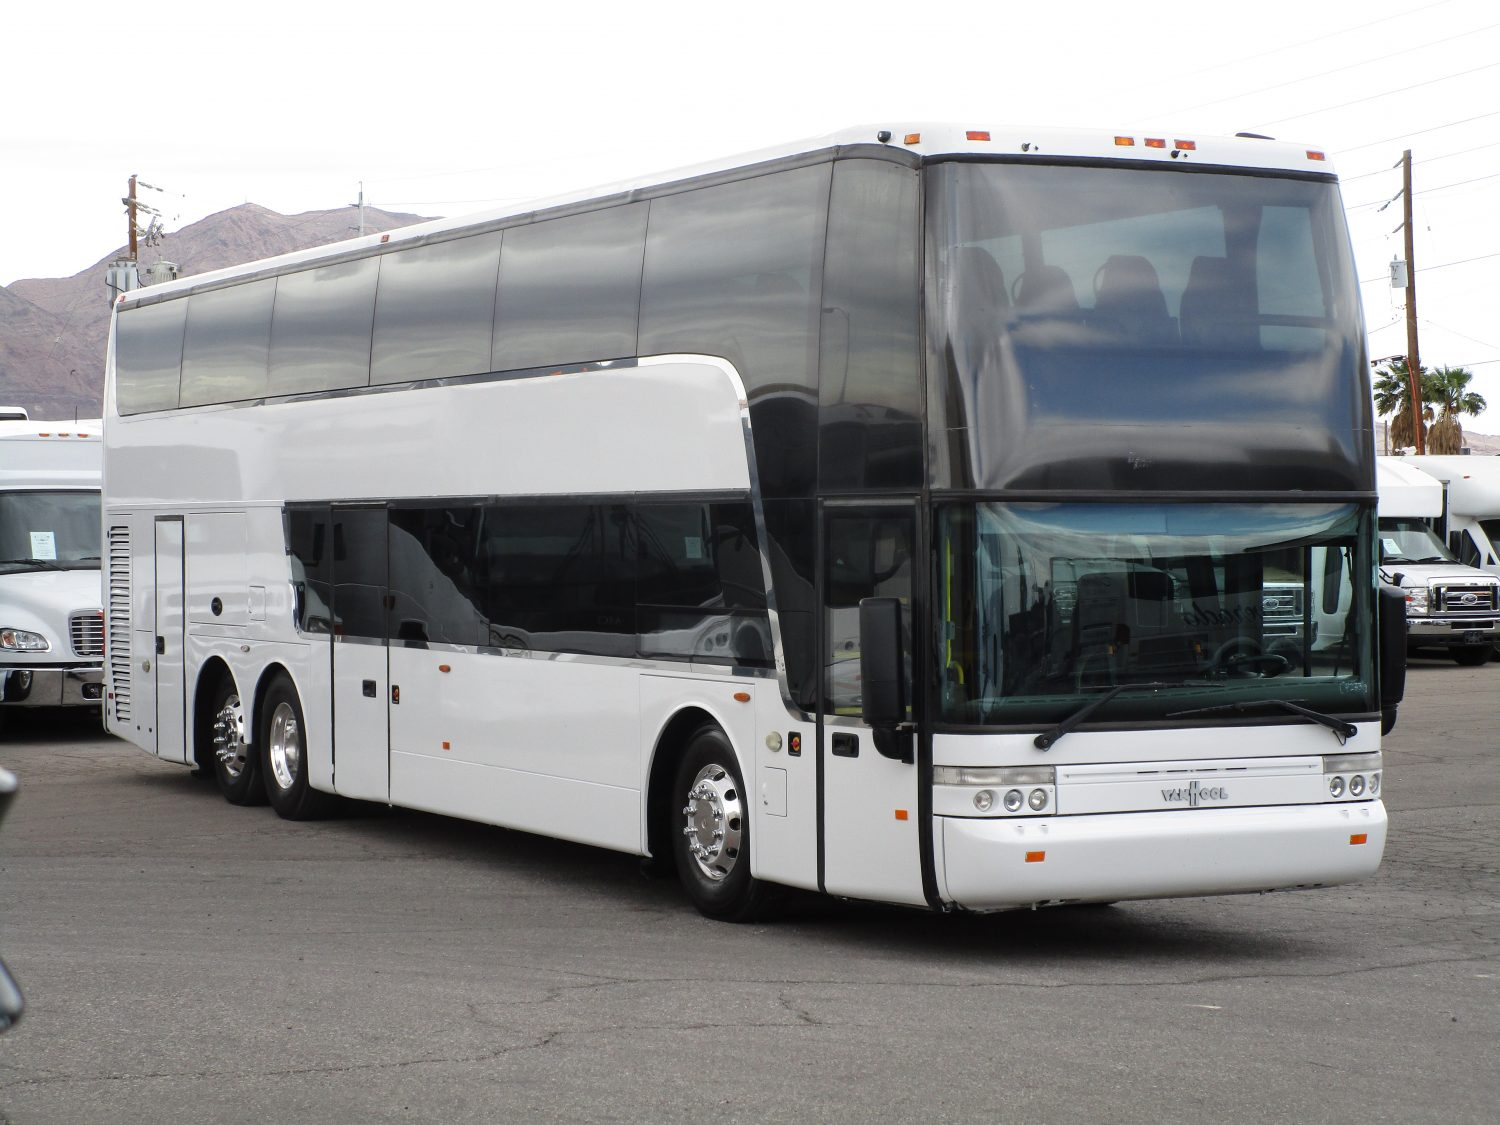 Used & New Coach Buses for Sale - Big Passenger Buses